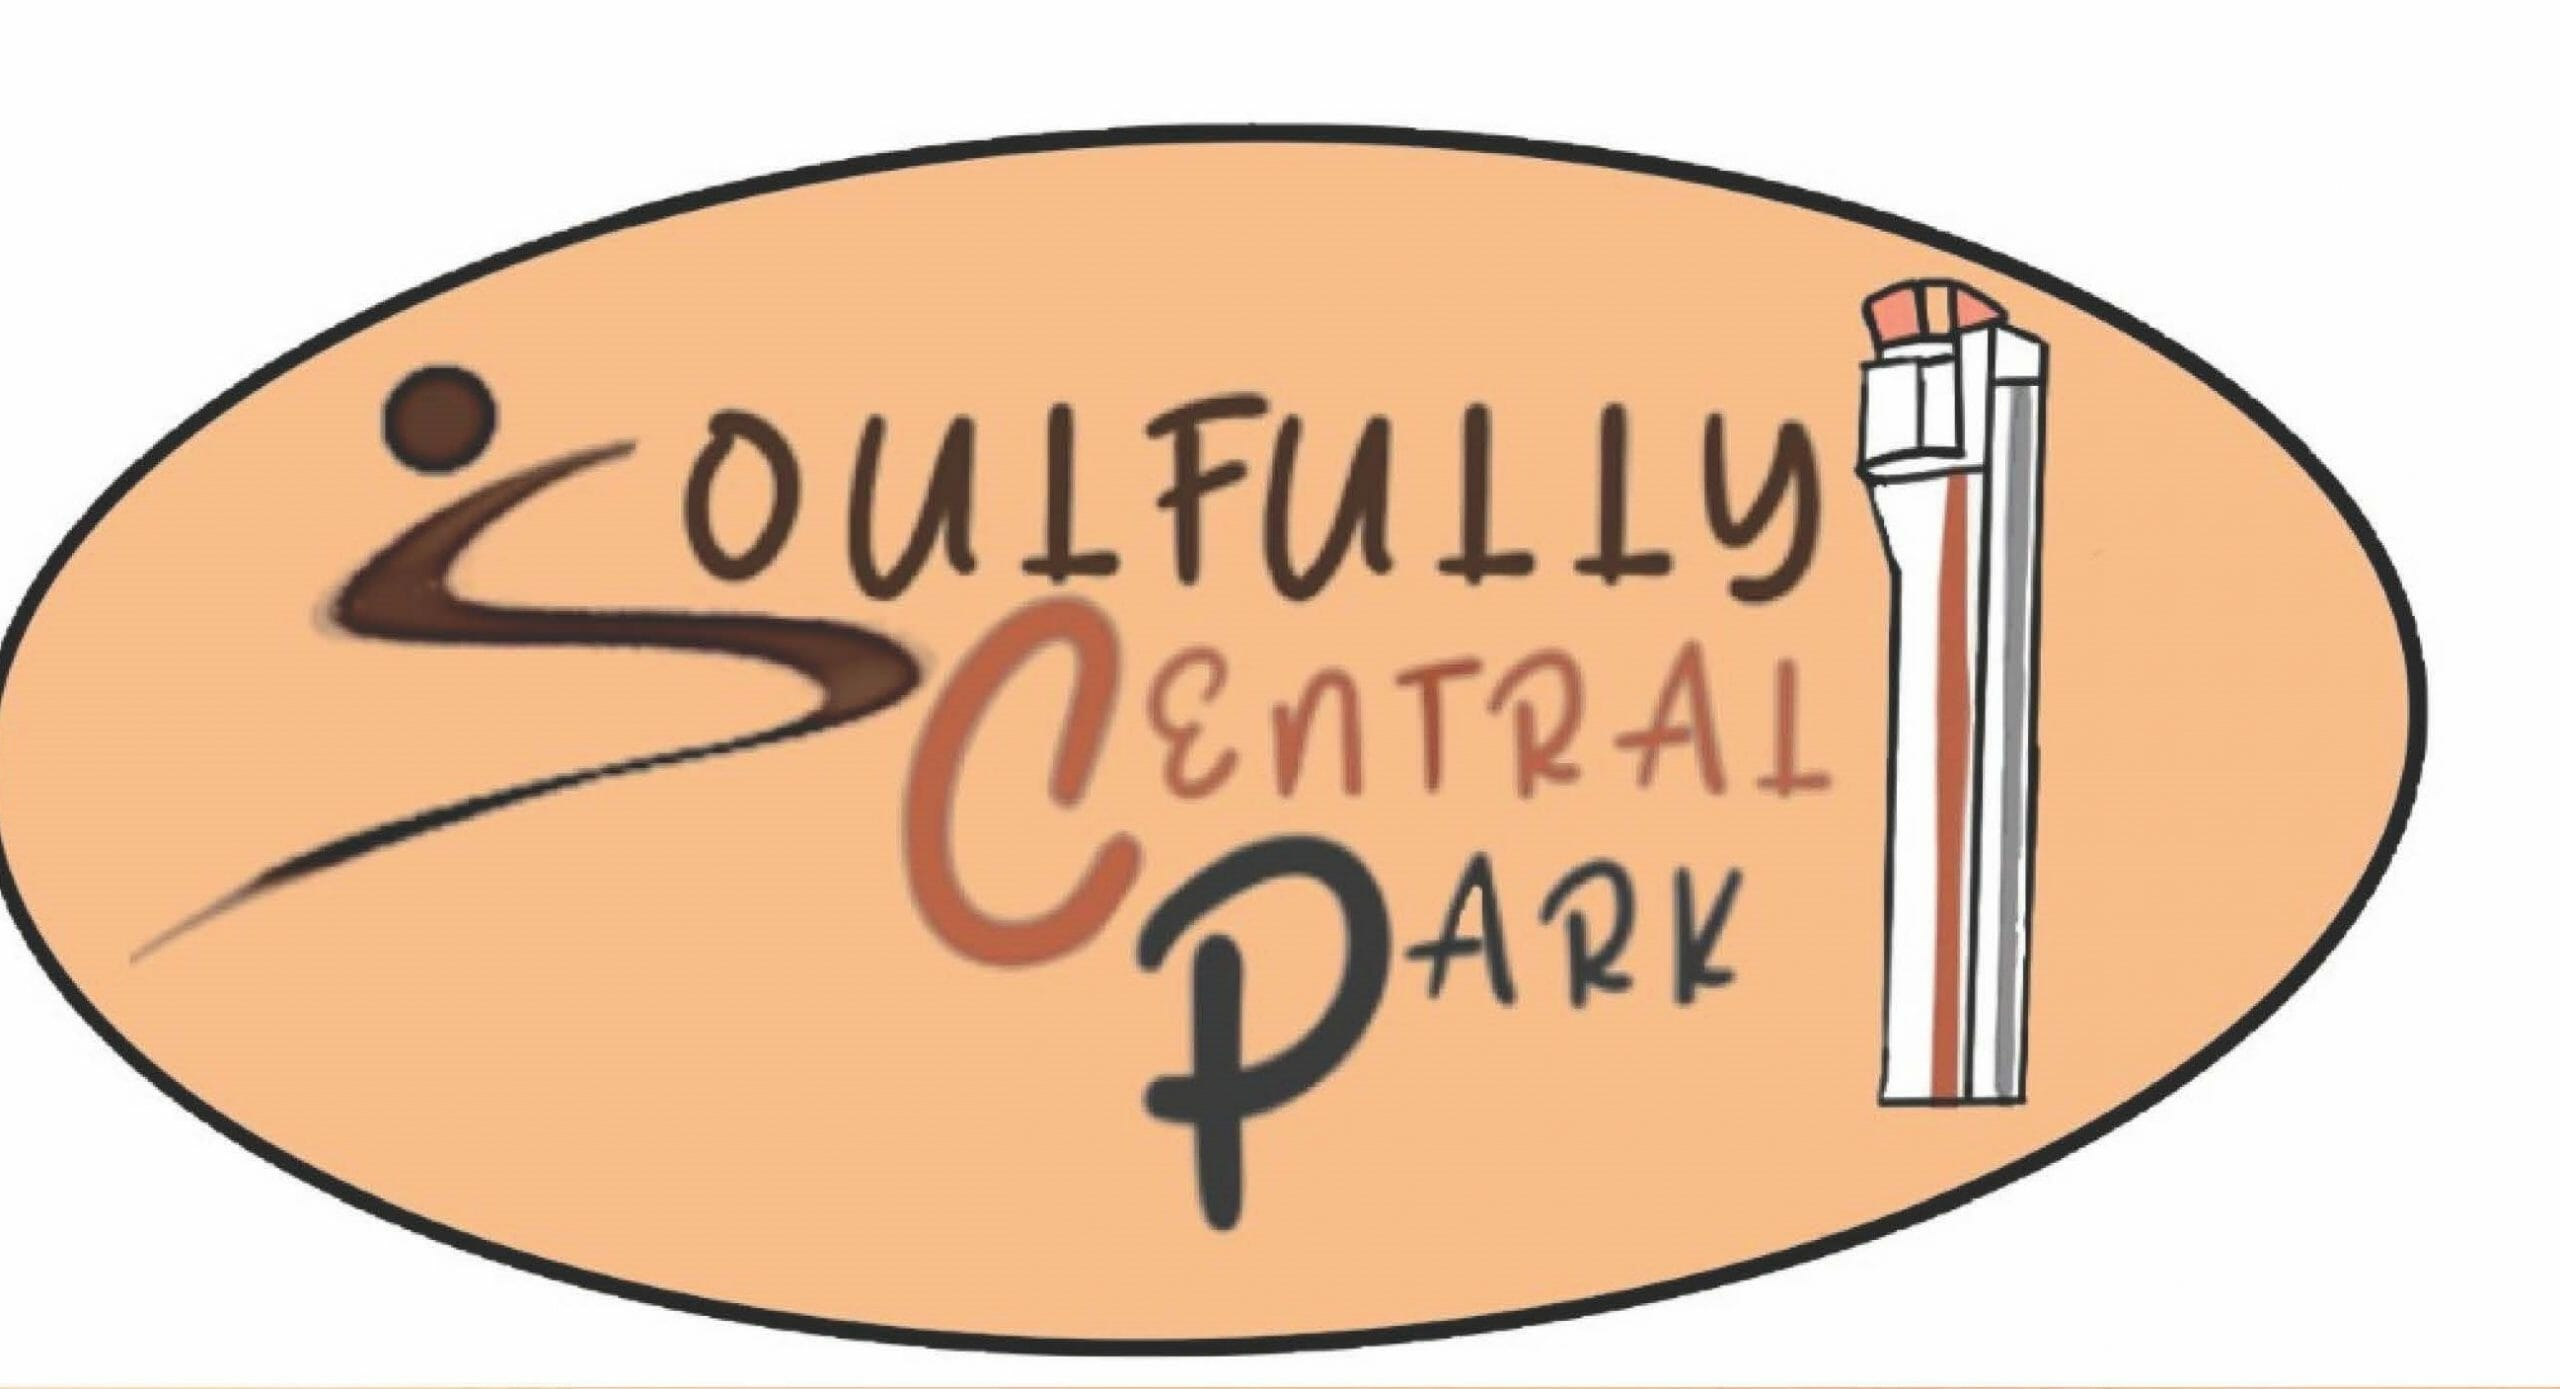 Soulfully Central Park